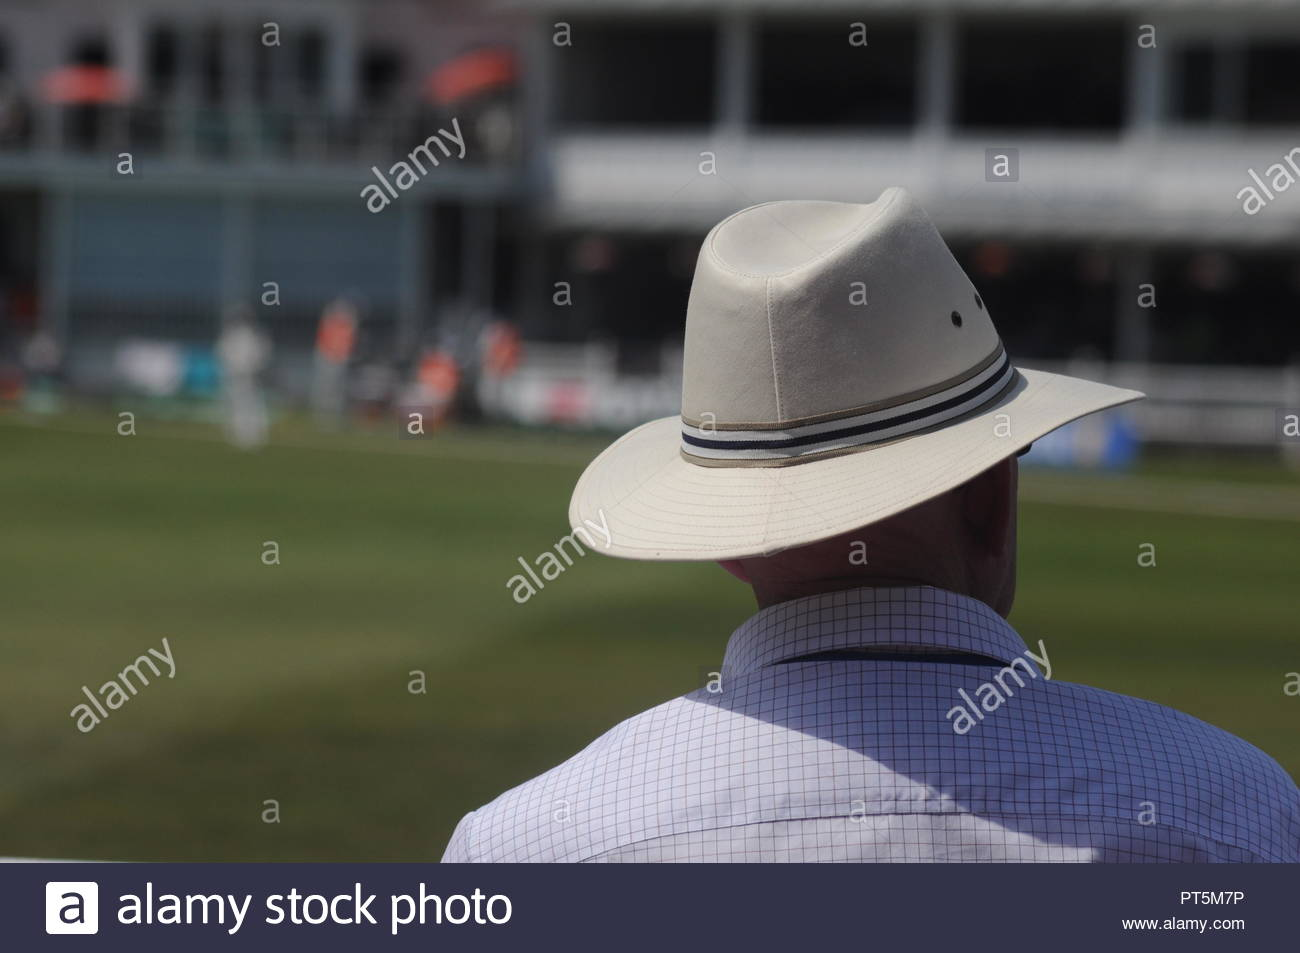 fee1ecf9 Man in hat watching a cricket match in summer Stock Photo: 221401818 ...